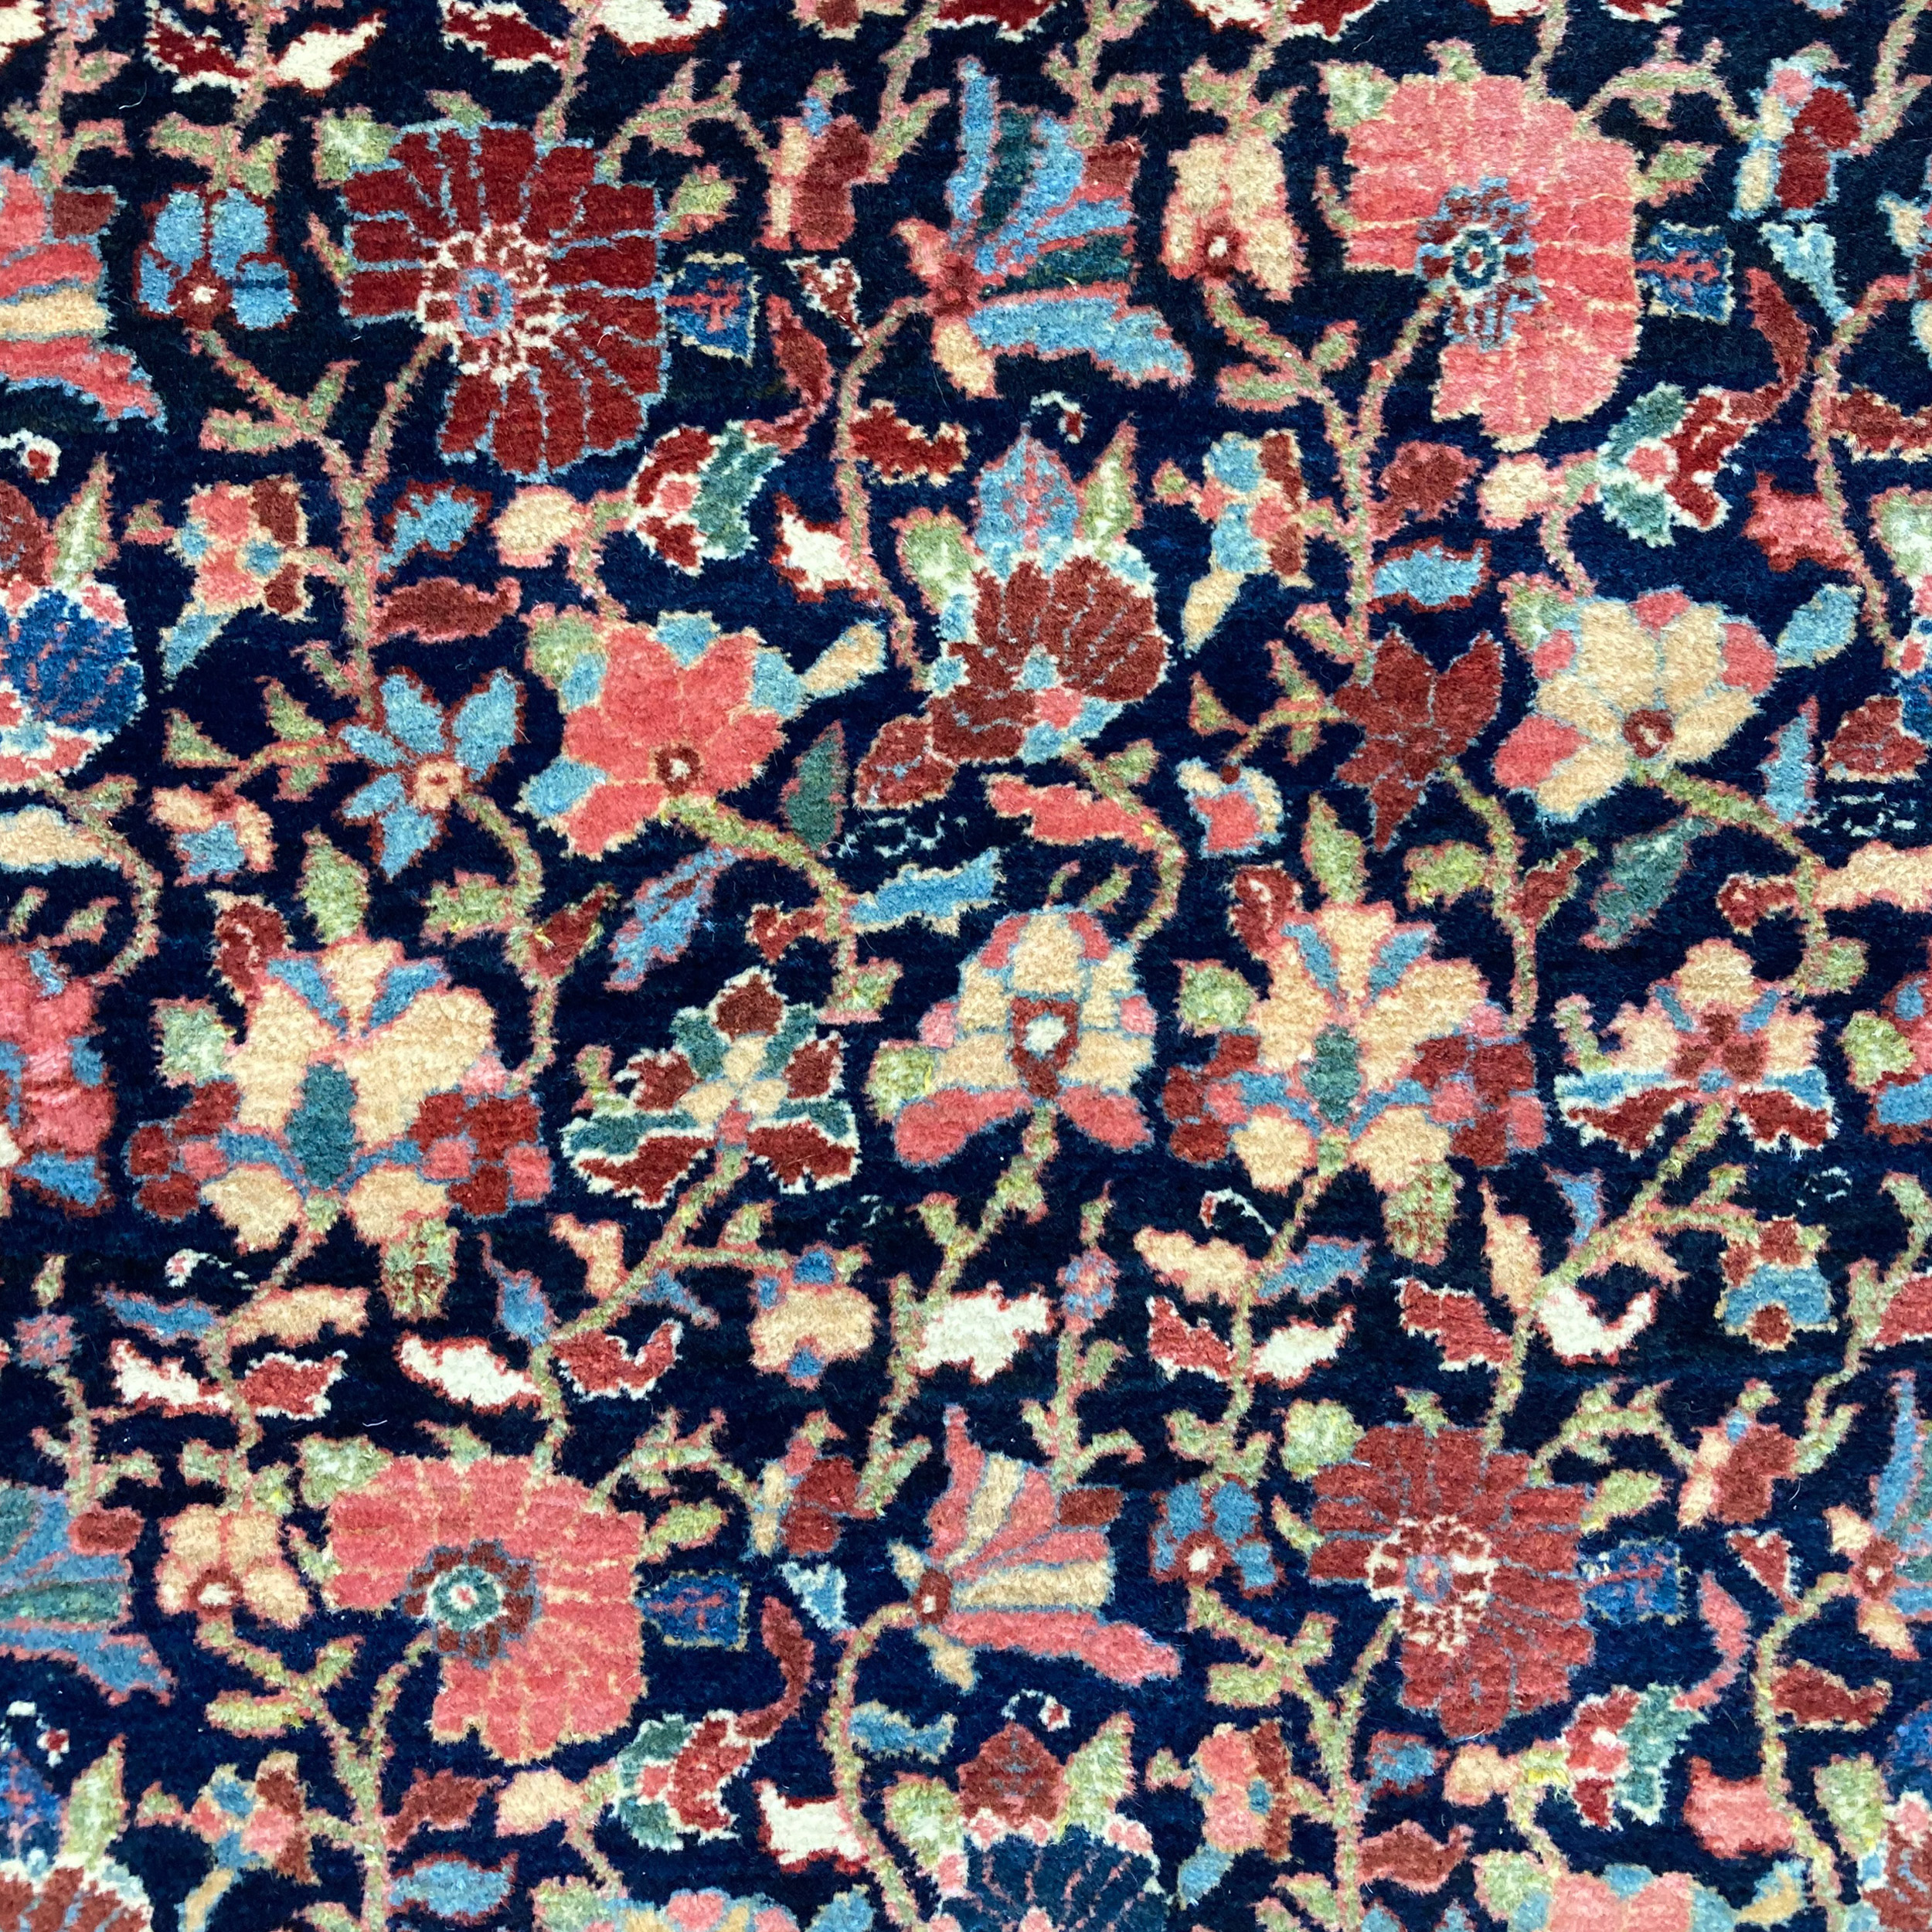 Antique Persian Bidjar with a Millefleur design on a navy blue field - Douglas Stock Gallery, antique Persian carpets and Oriental rugs, Boston,MA area